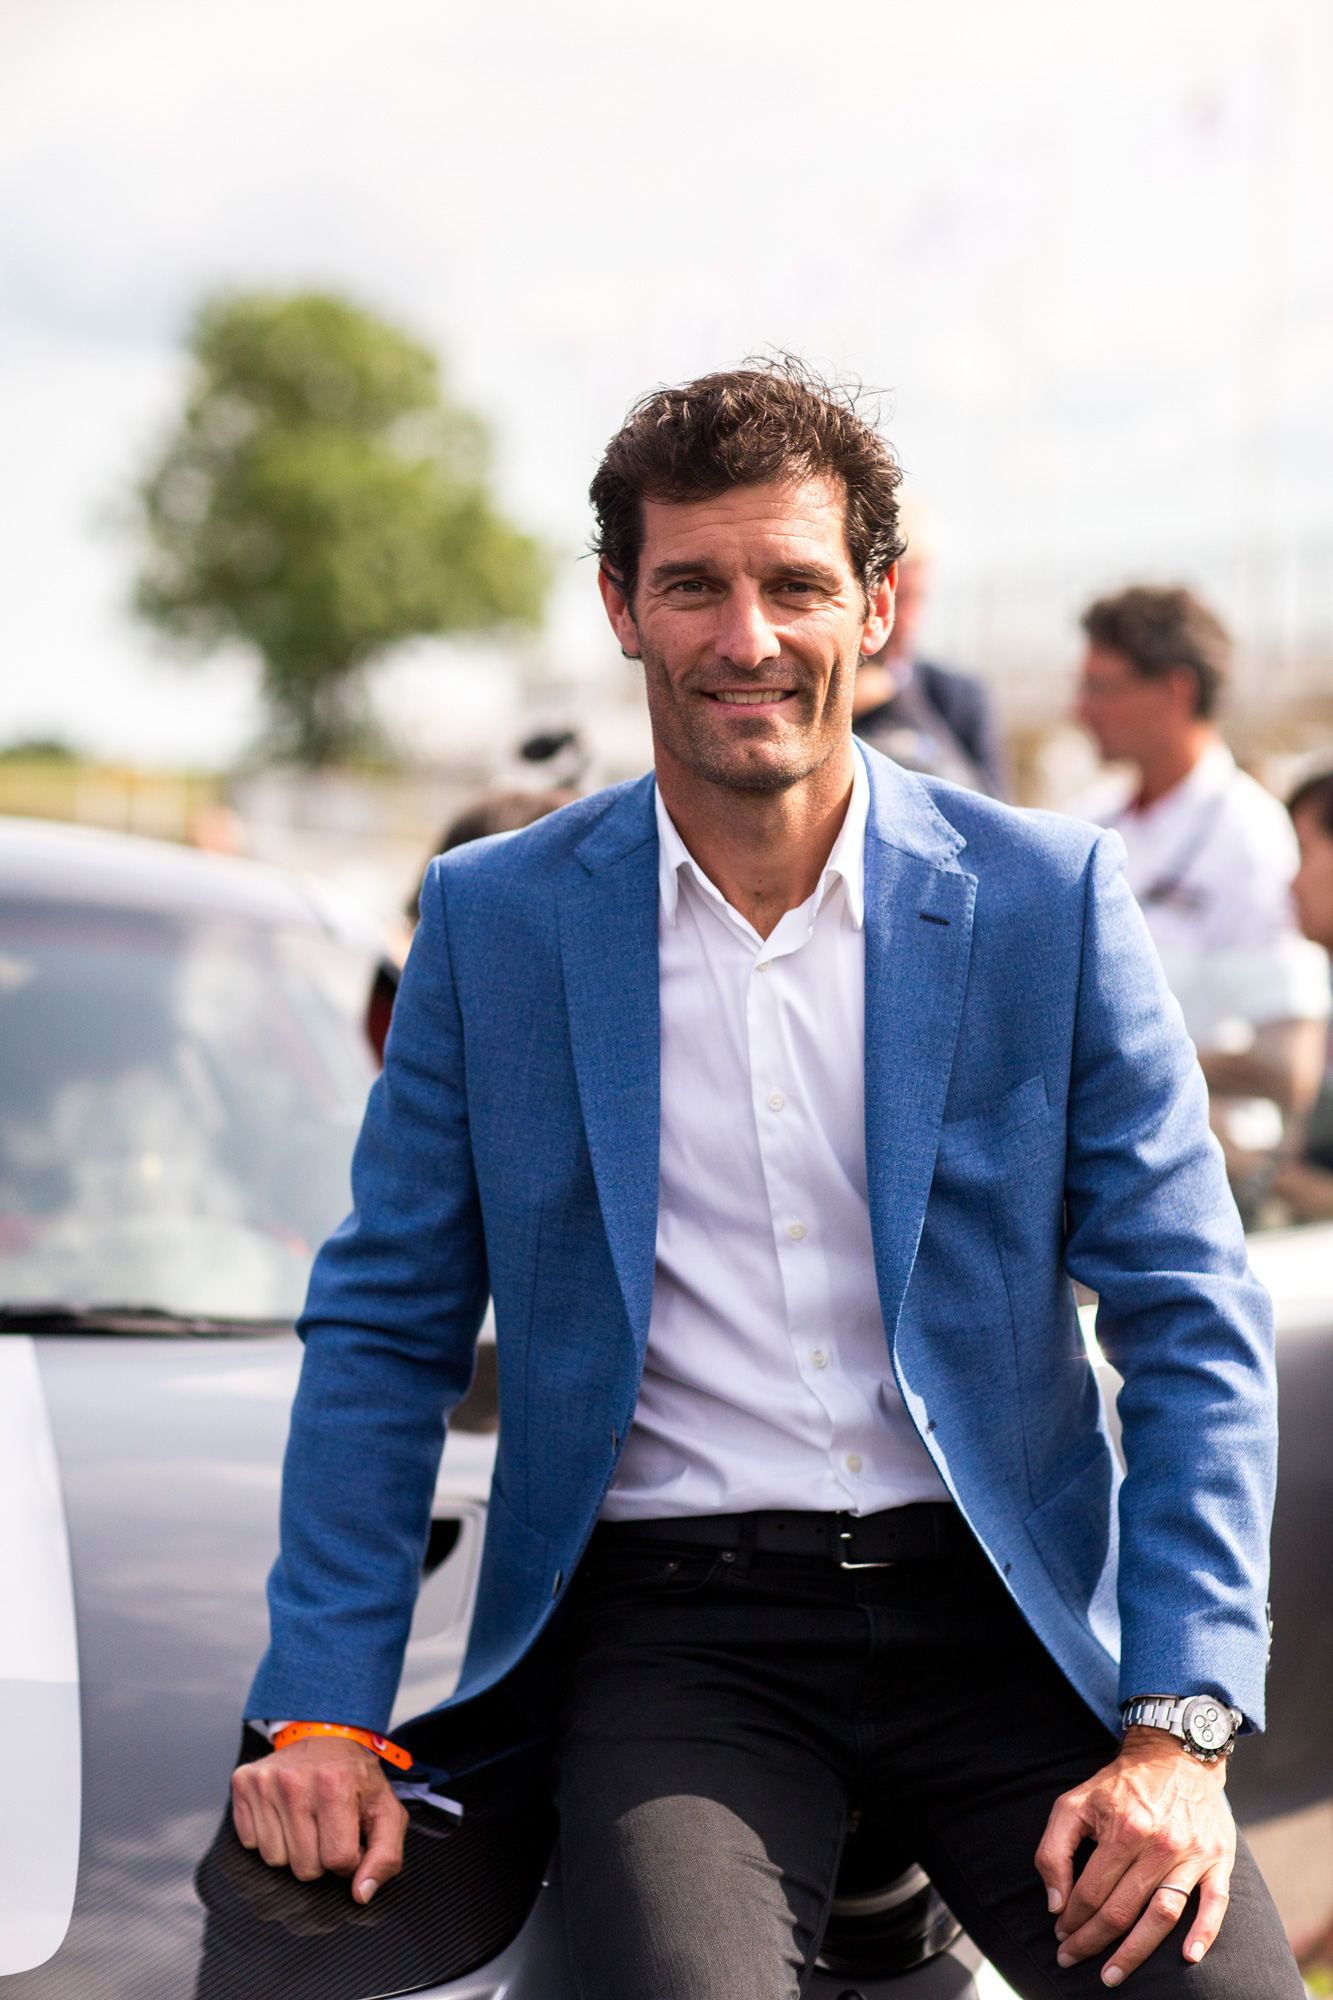 mark webber racing driver goodwood portrait